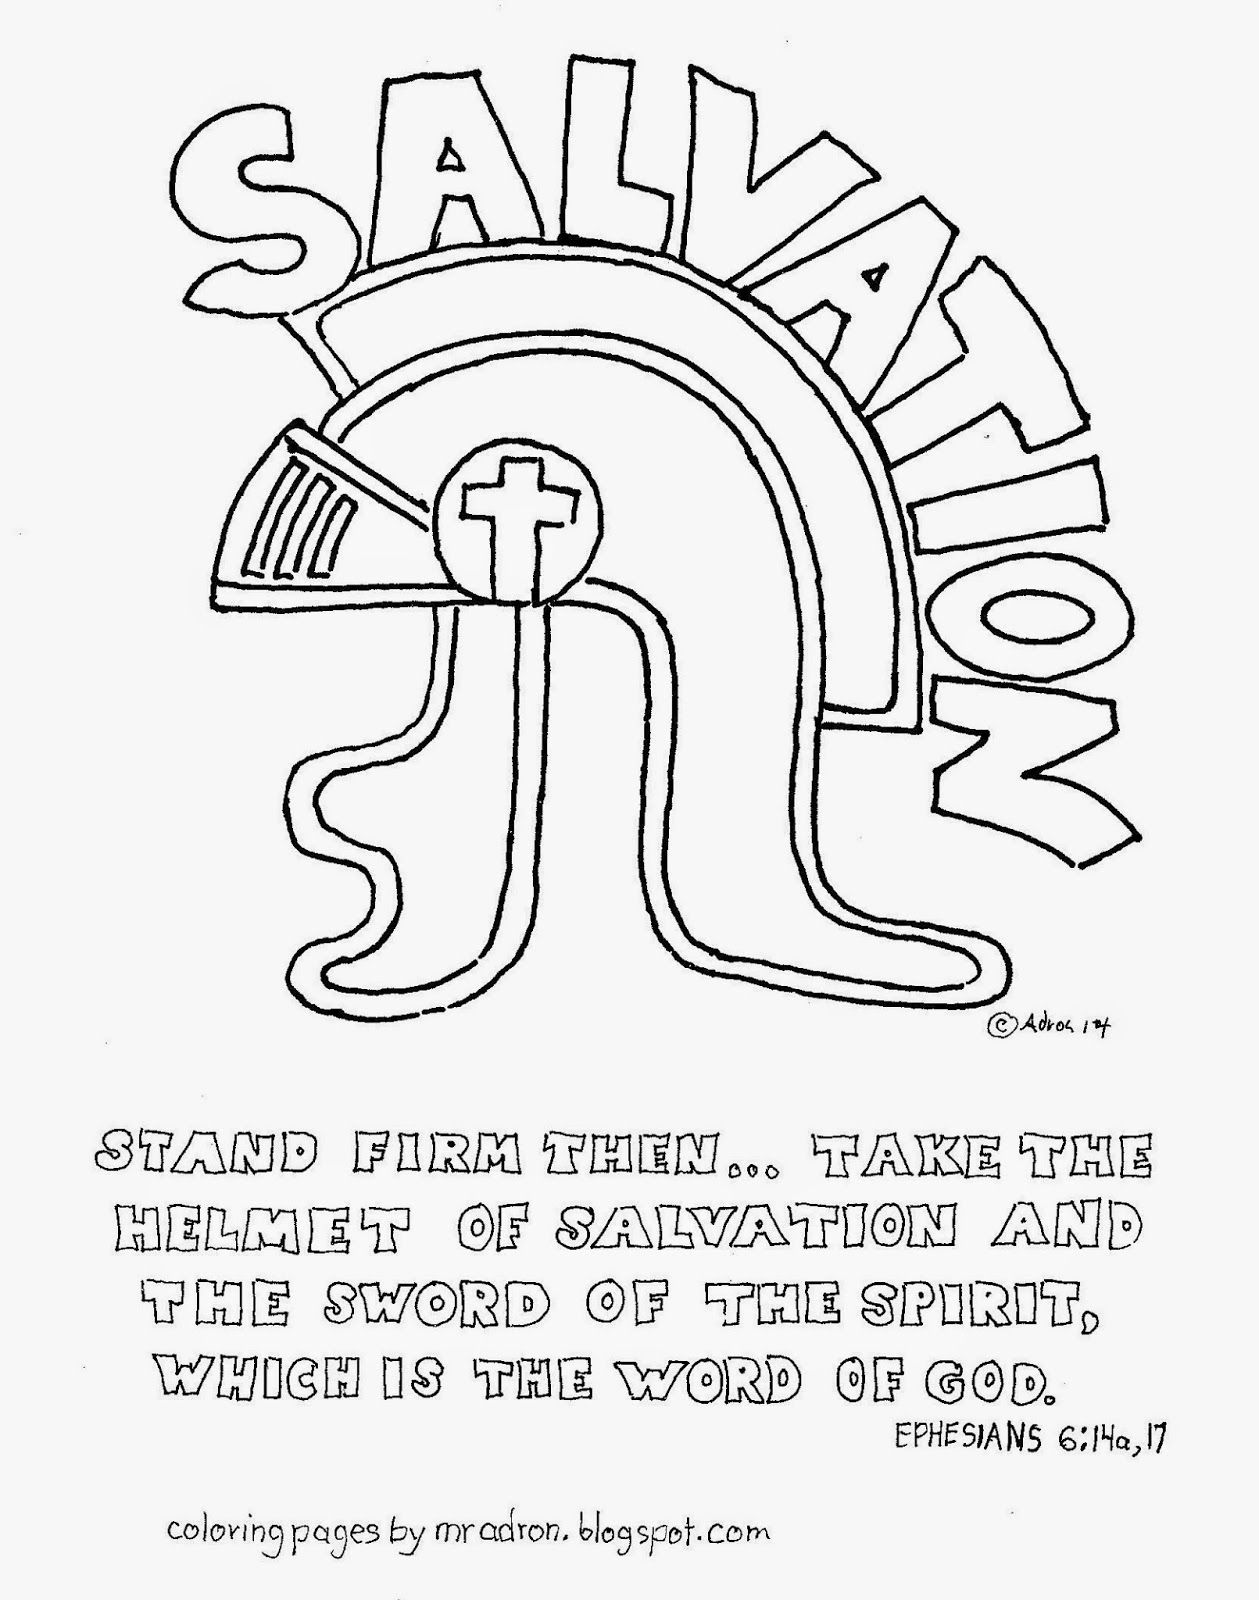 Coloring pages for preschoolers on salavation - Coloring Pages For Kids By Mr Adron The Helmet Of Salvation Free Coloring Page